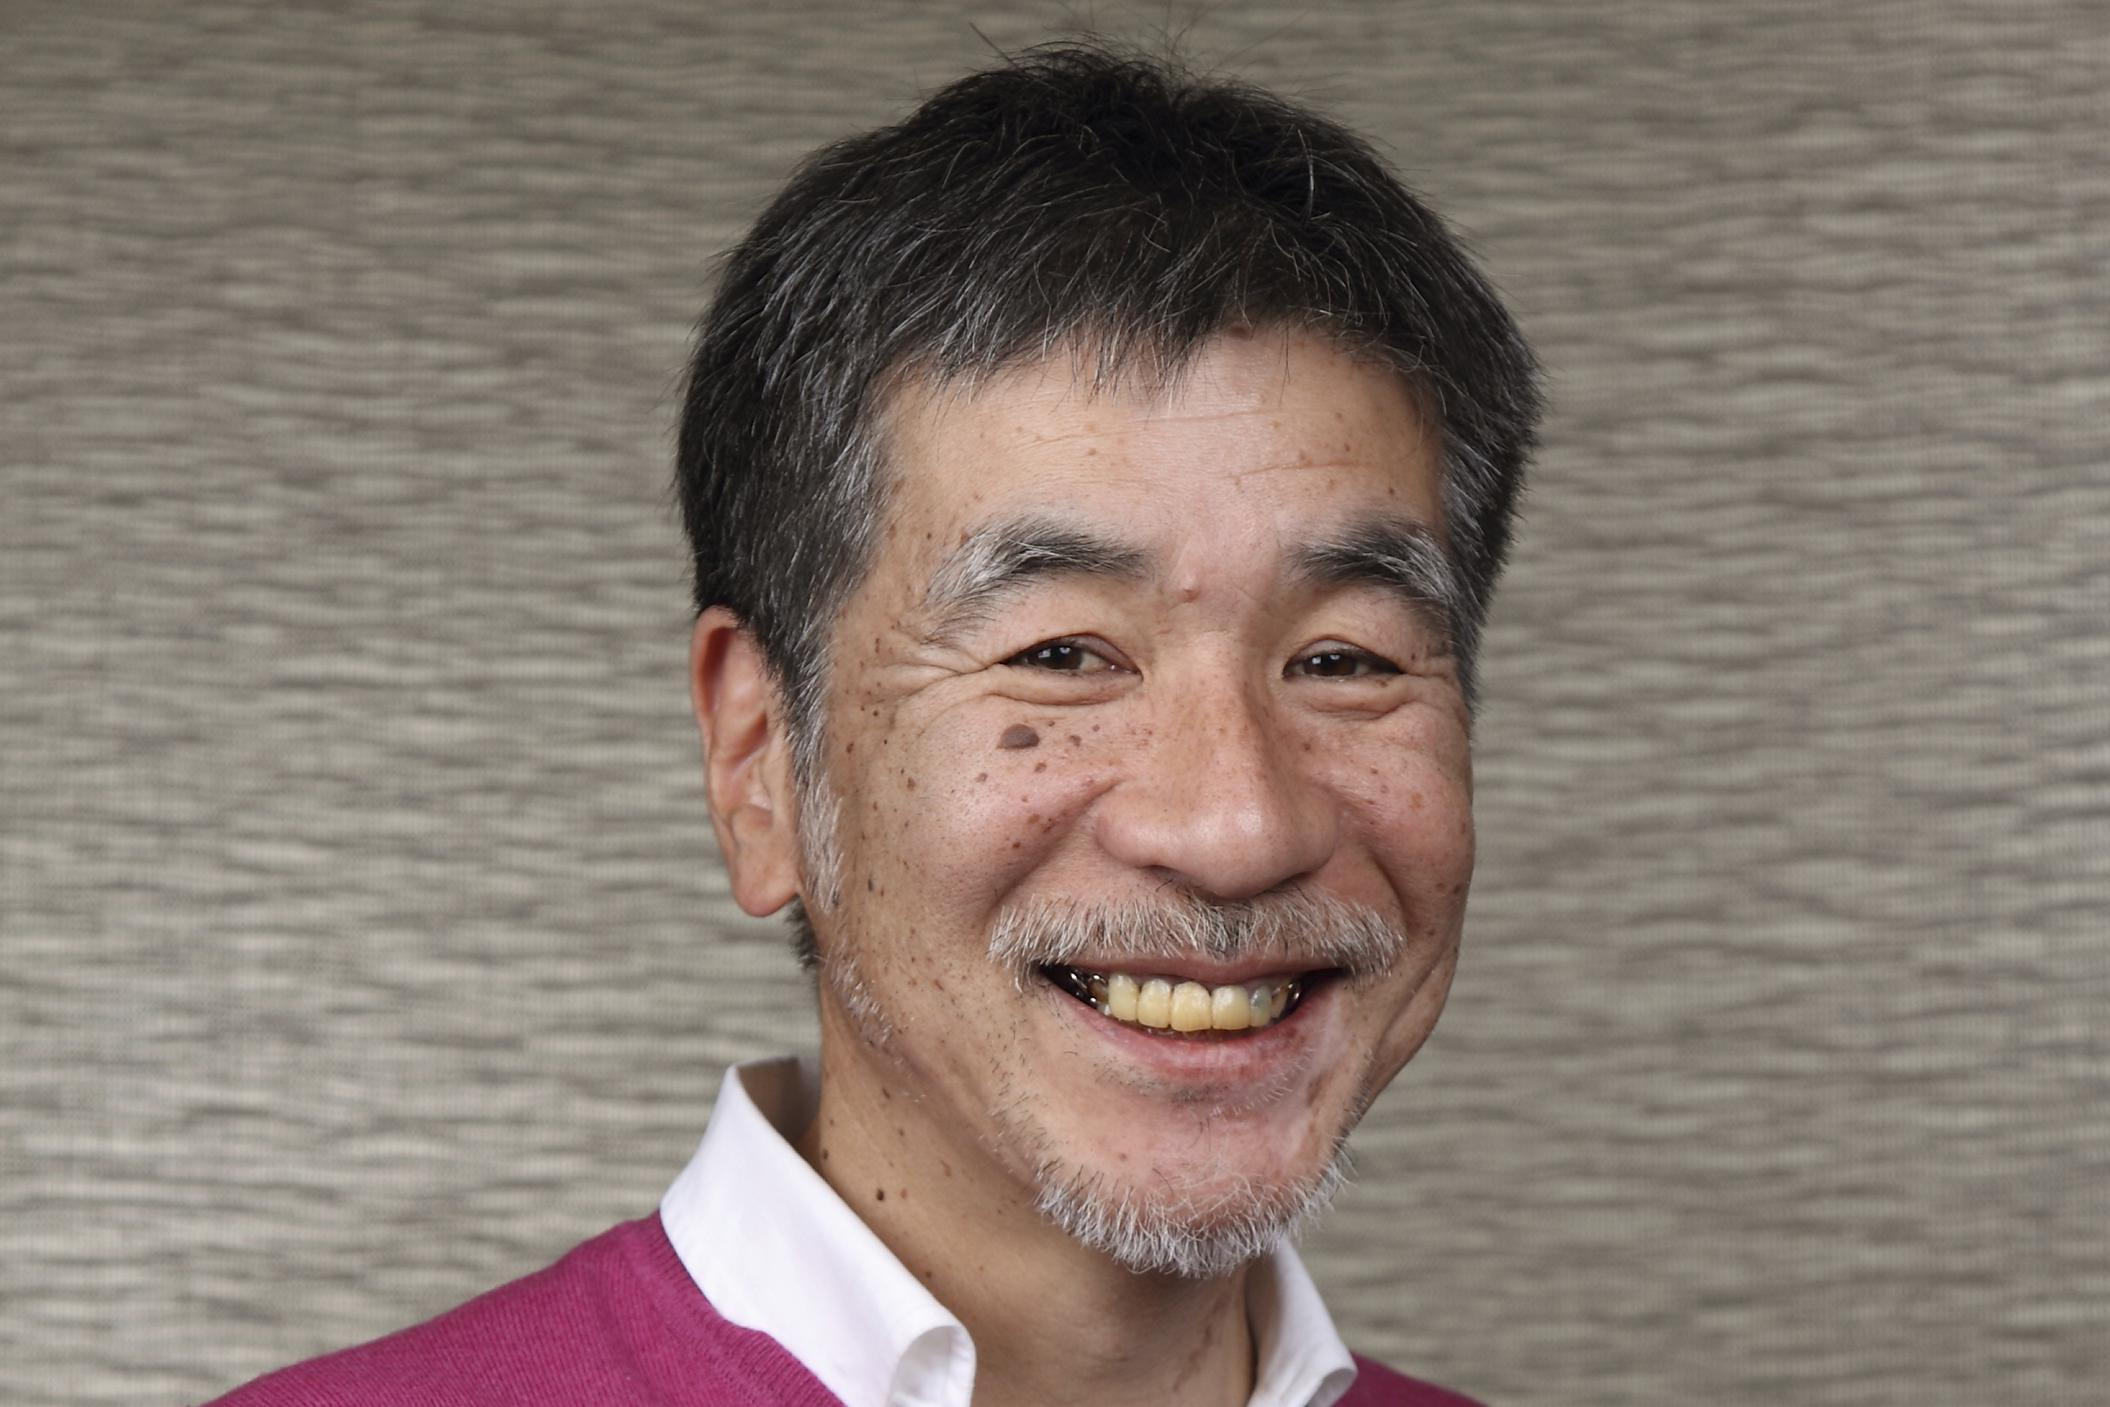 TOKYO (AP) — Maki Kaji, the creator of the popular numbers puzzle Sudoku whose life's work was spreading the joy of puzzles, has died, his Japanes